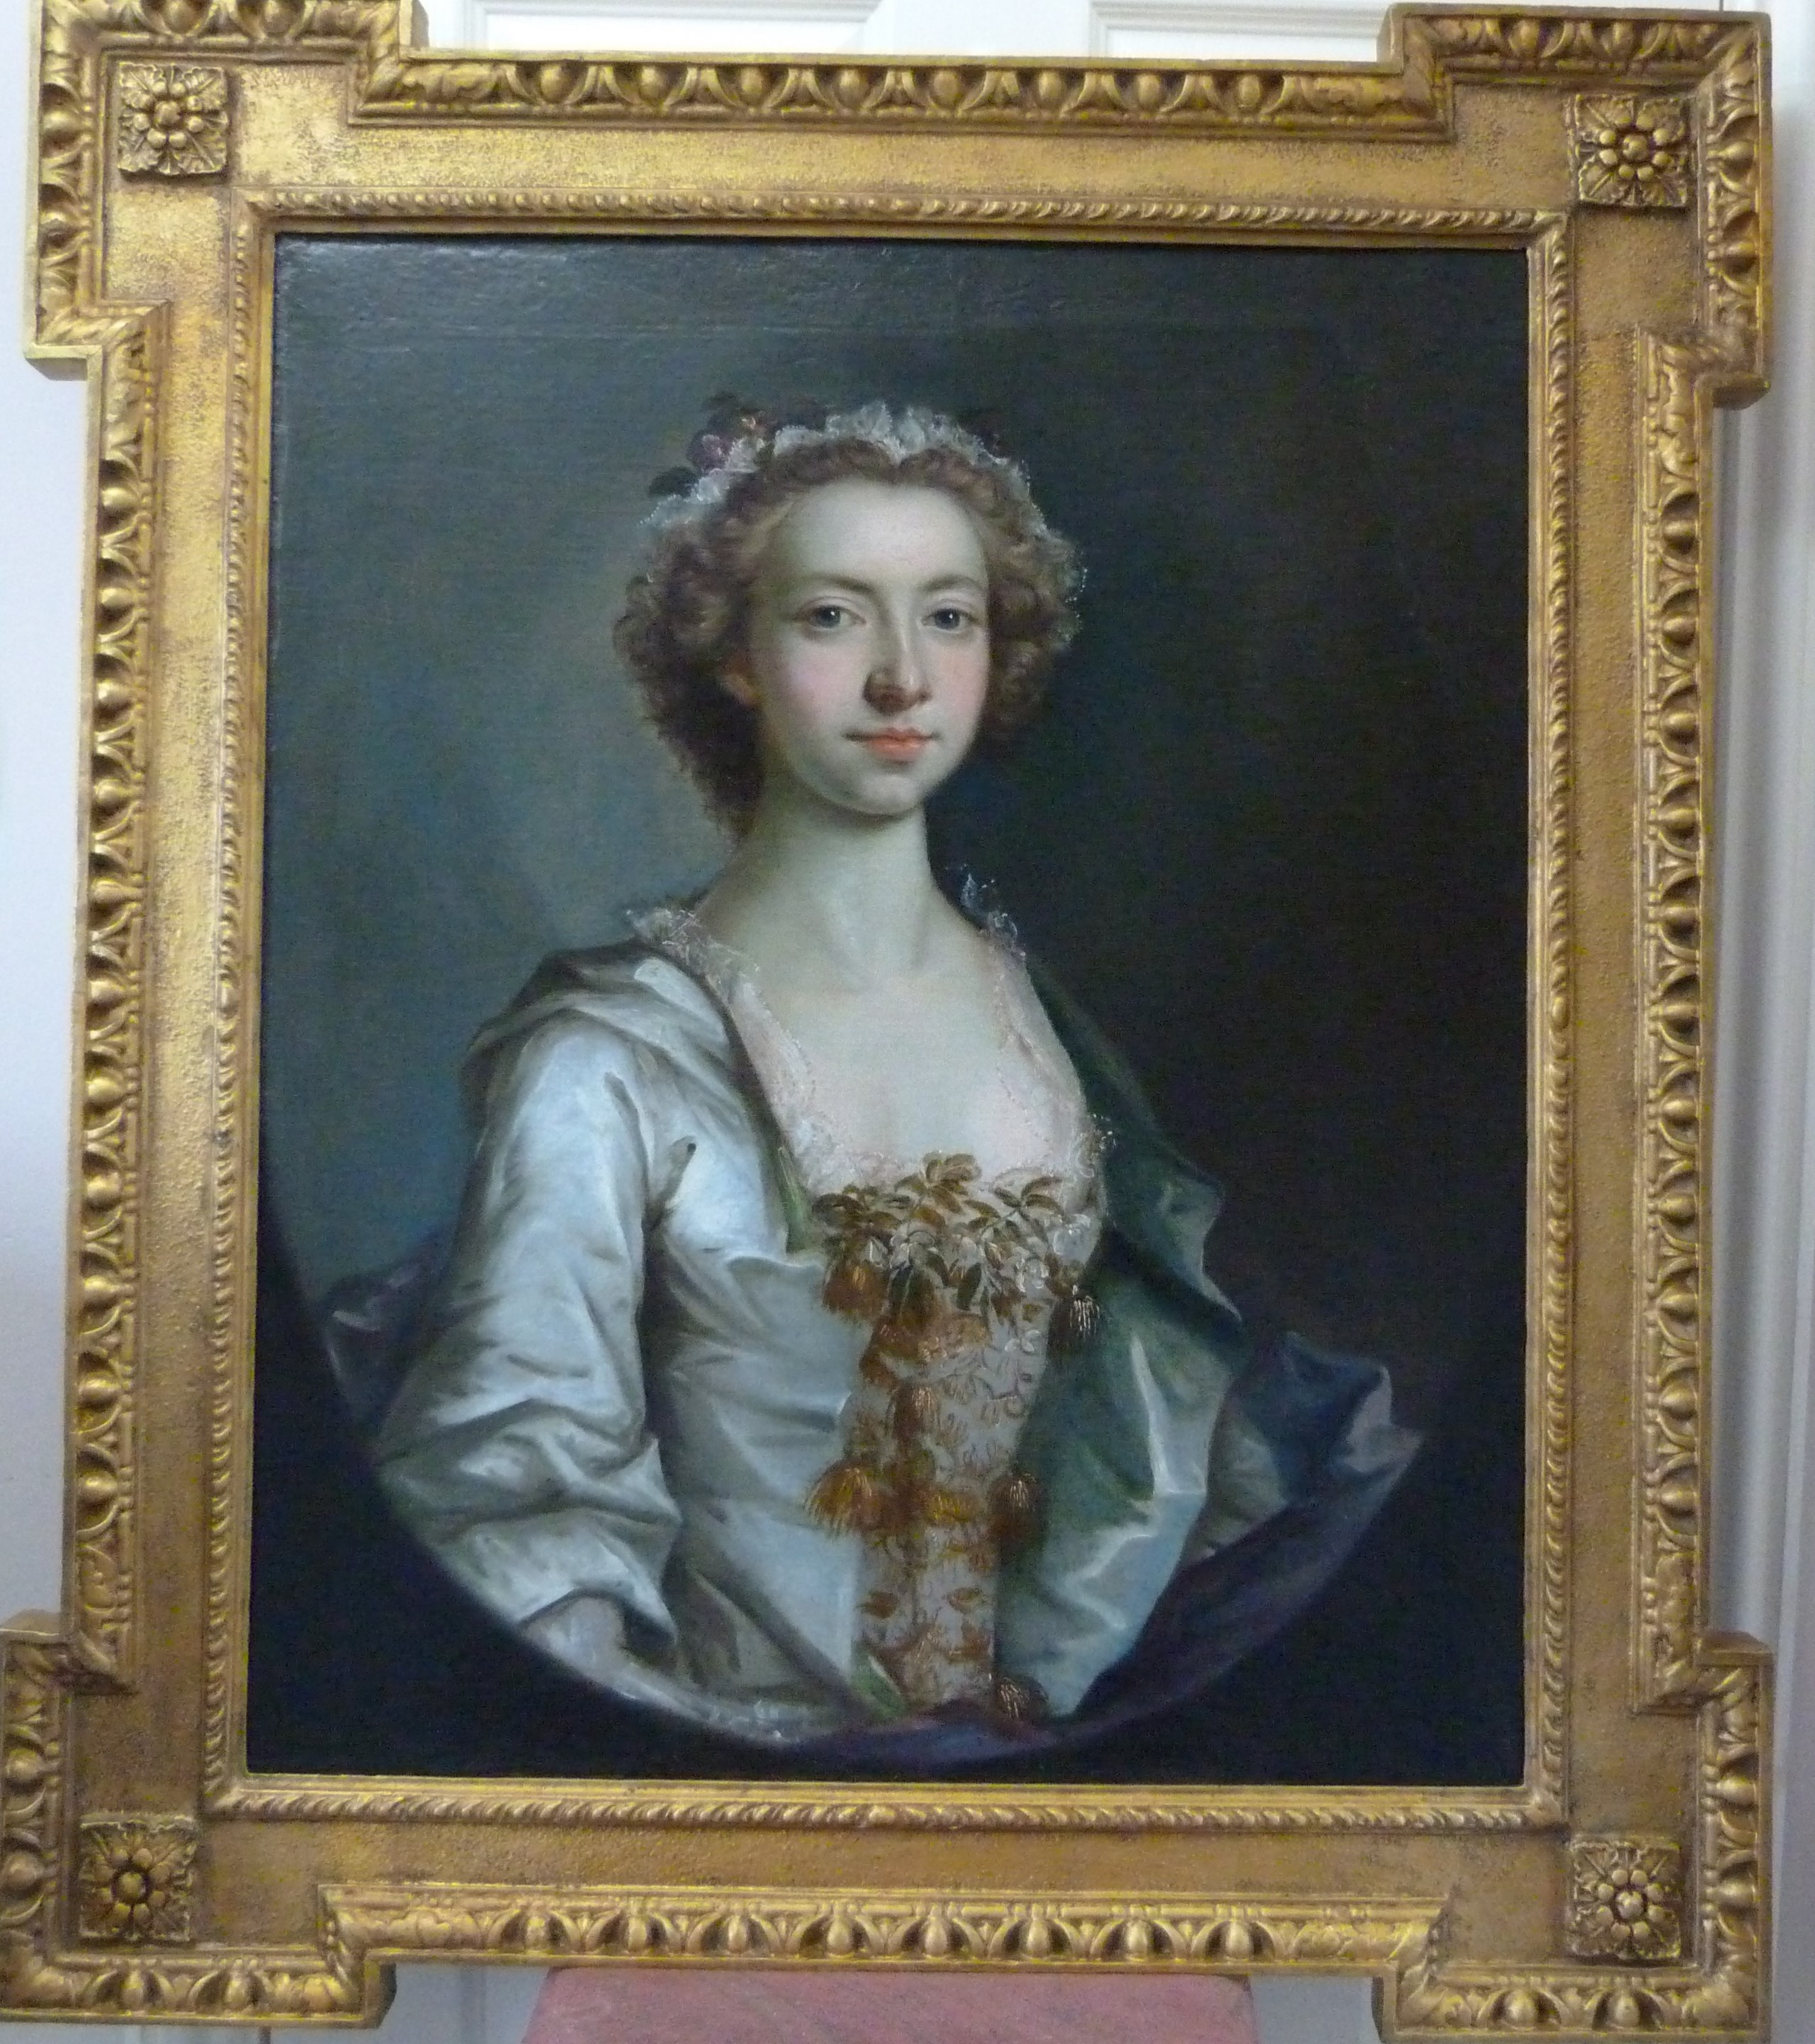 Portrait of Letitia Hall, c1775, by George Knapton. (c. 1775.